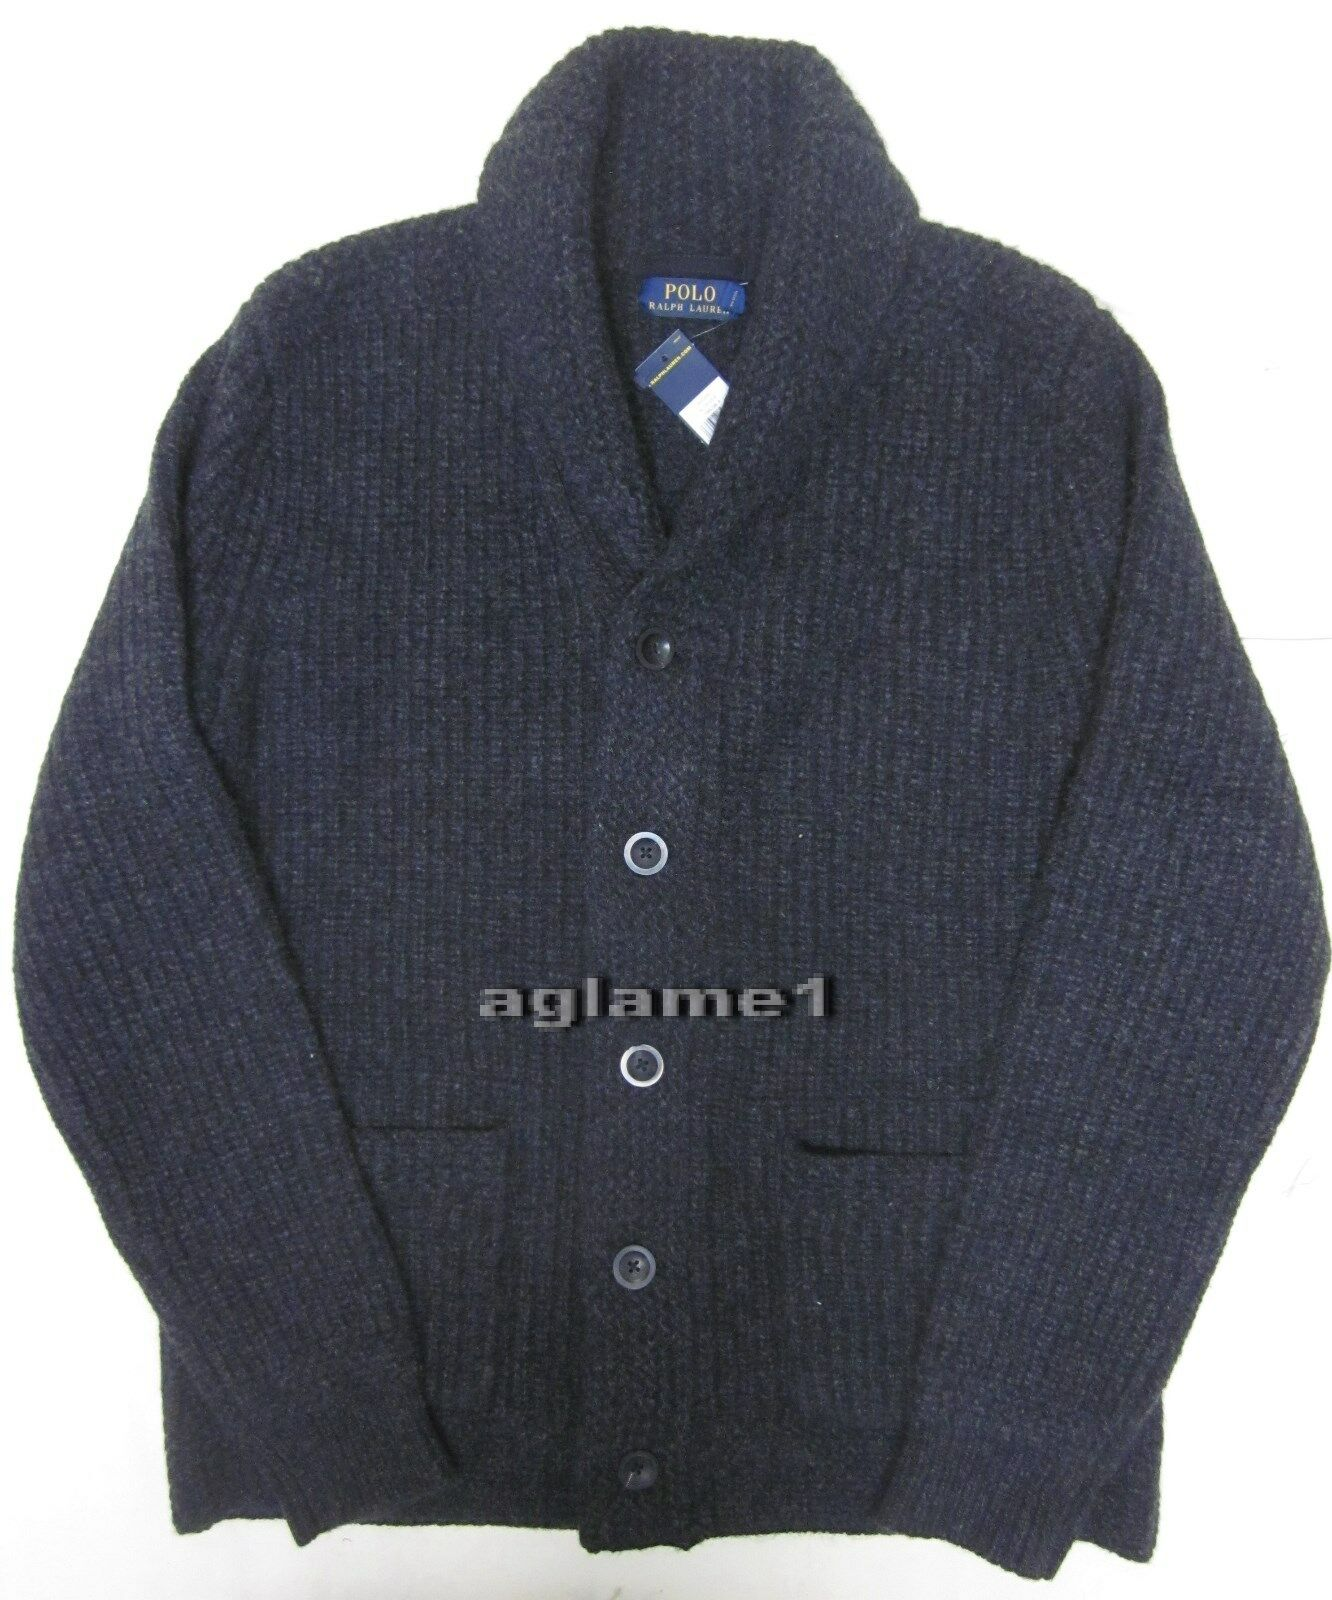 Polo Ralph Lauren Mens Wool Cashmere Charcoal Shawl Cardigan ...